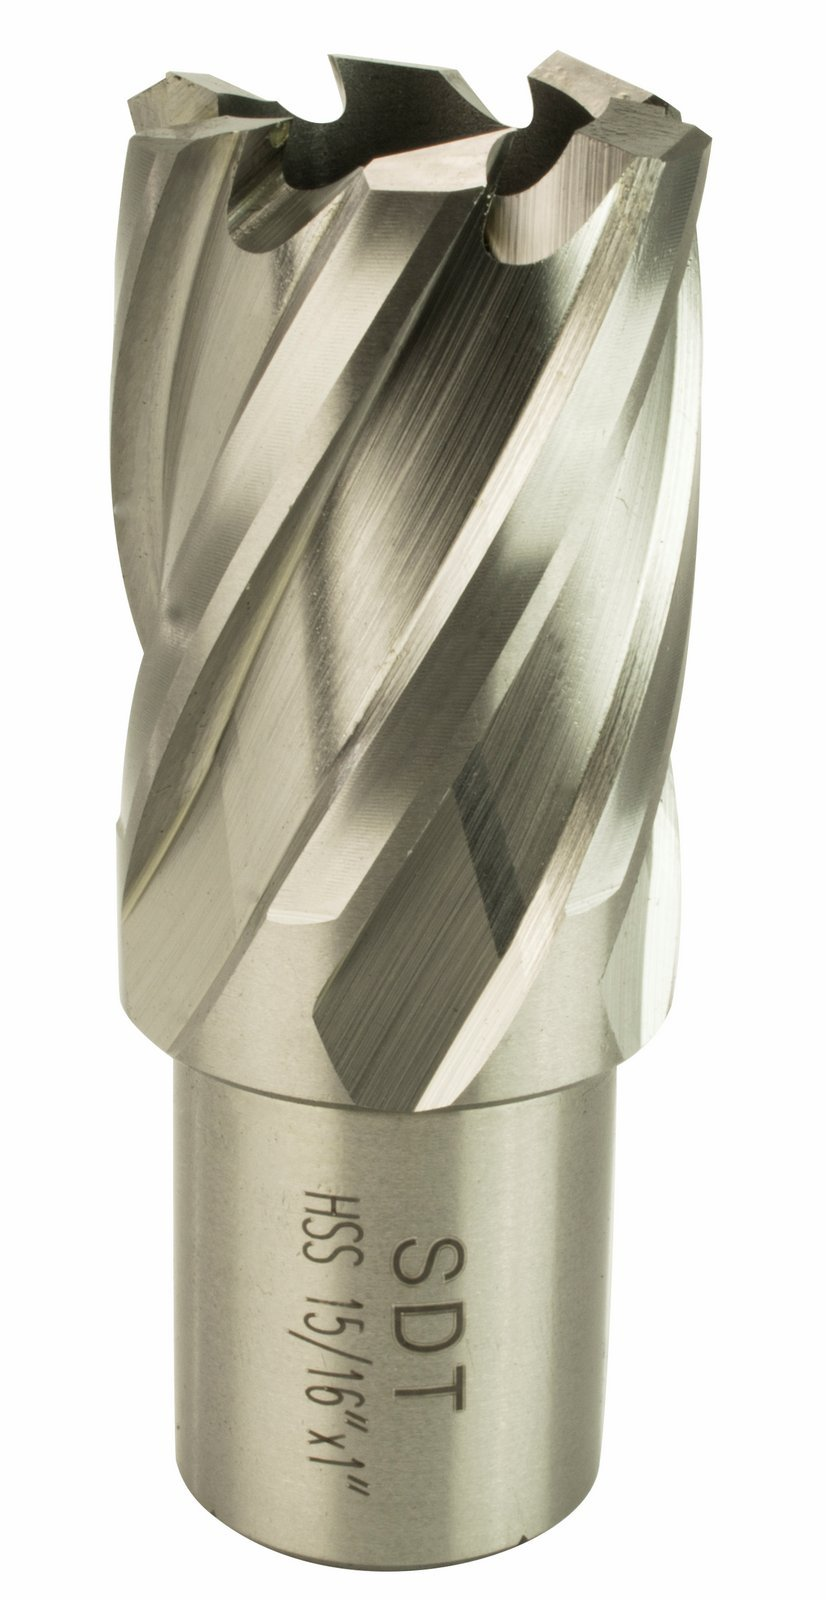 Steel Dragon Tools 15/16'' x 1'' High Speed Steel Annular Cutter with 3/4'' Weldon Shank